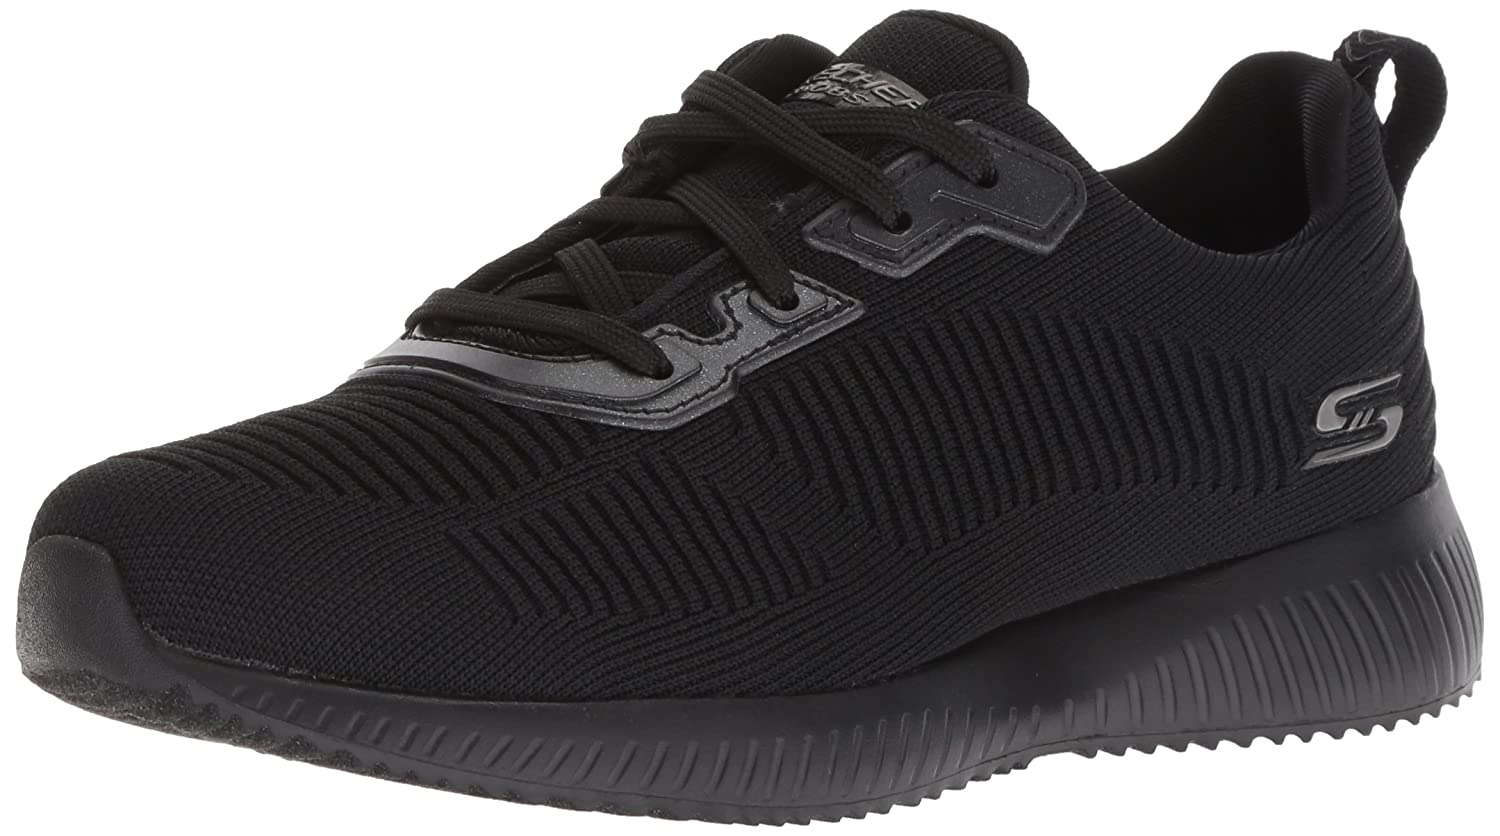 Skechers Bobs Squad-Tough Talk, Chaussures de Fitness Femme 32504